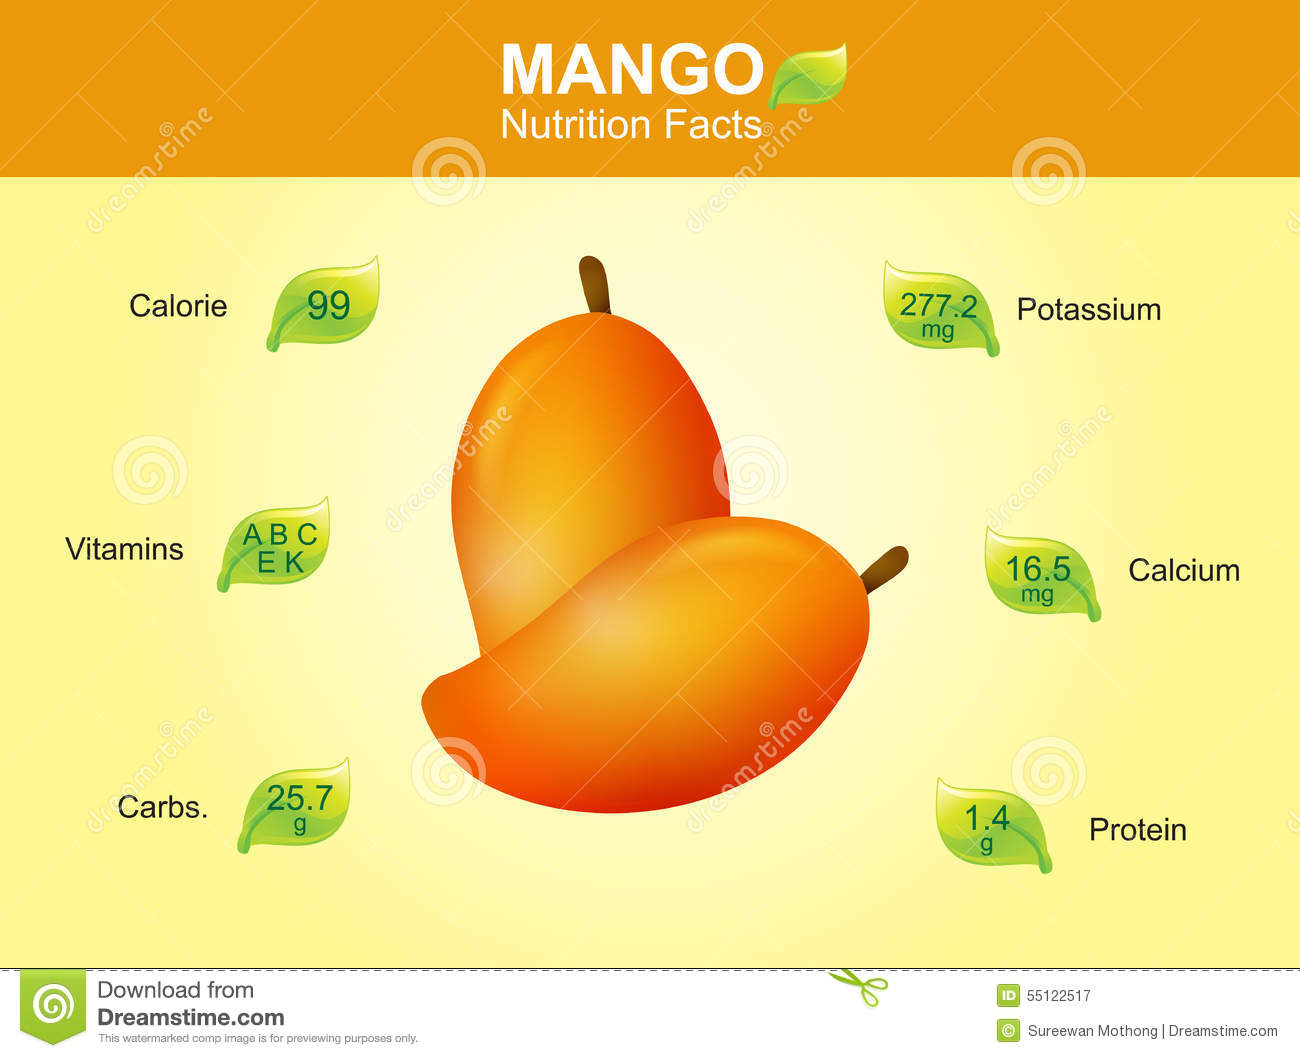 Mango Nutrition Facts  Mango Fruit With Information  Mango Vector Stock Vector